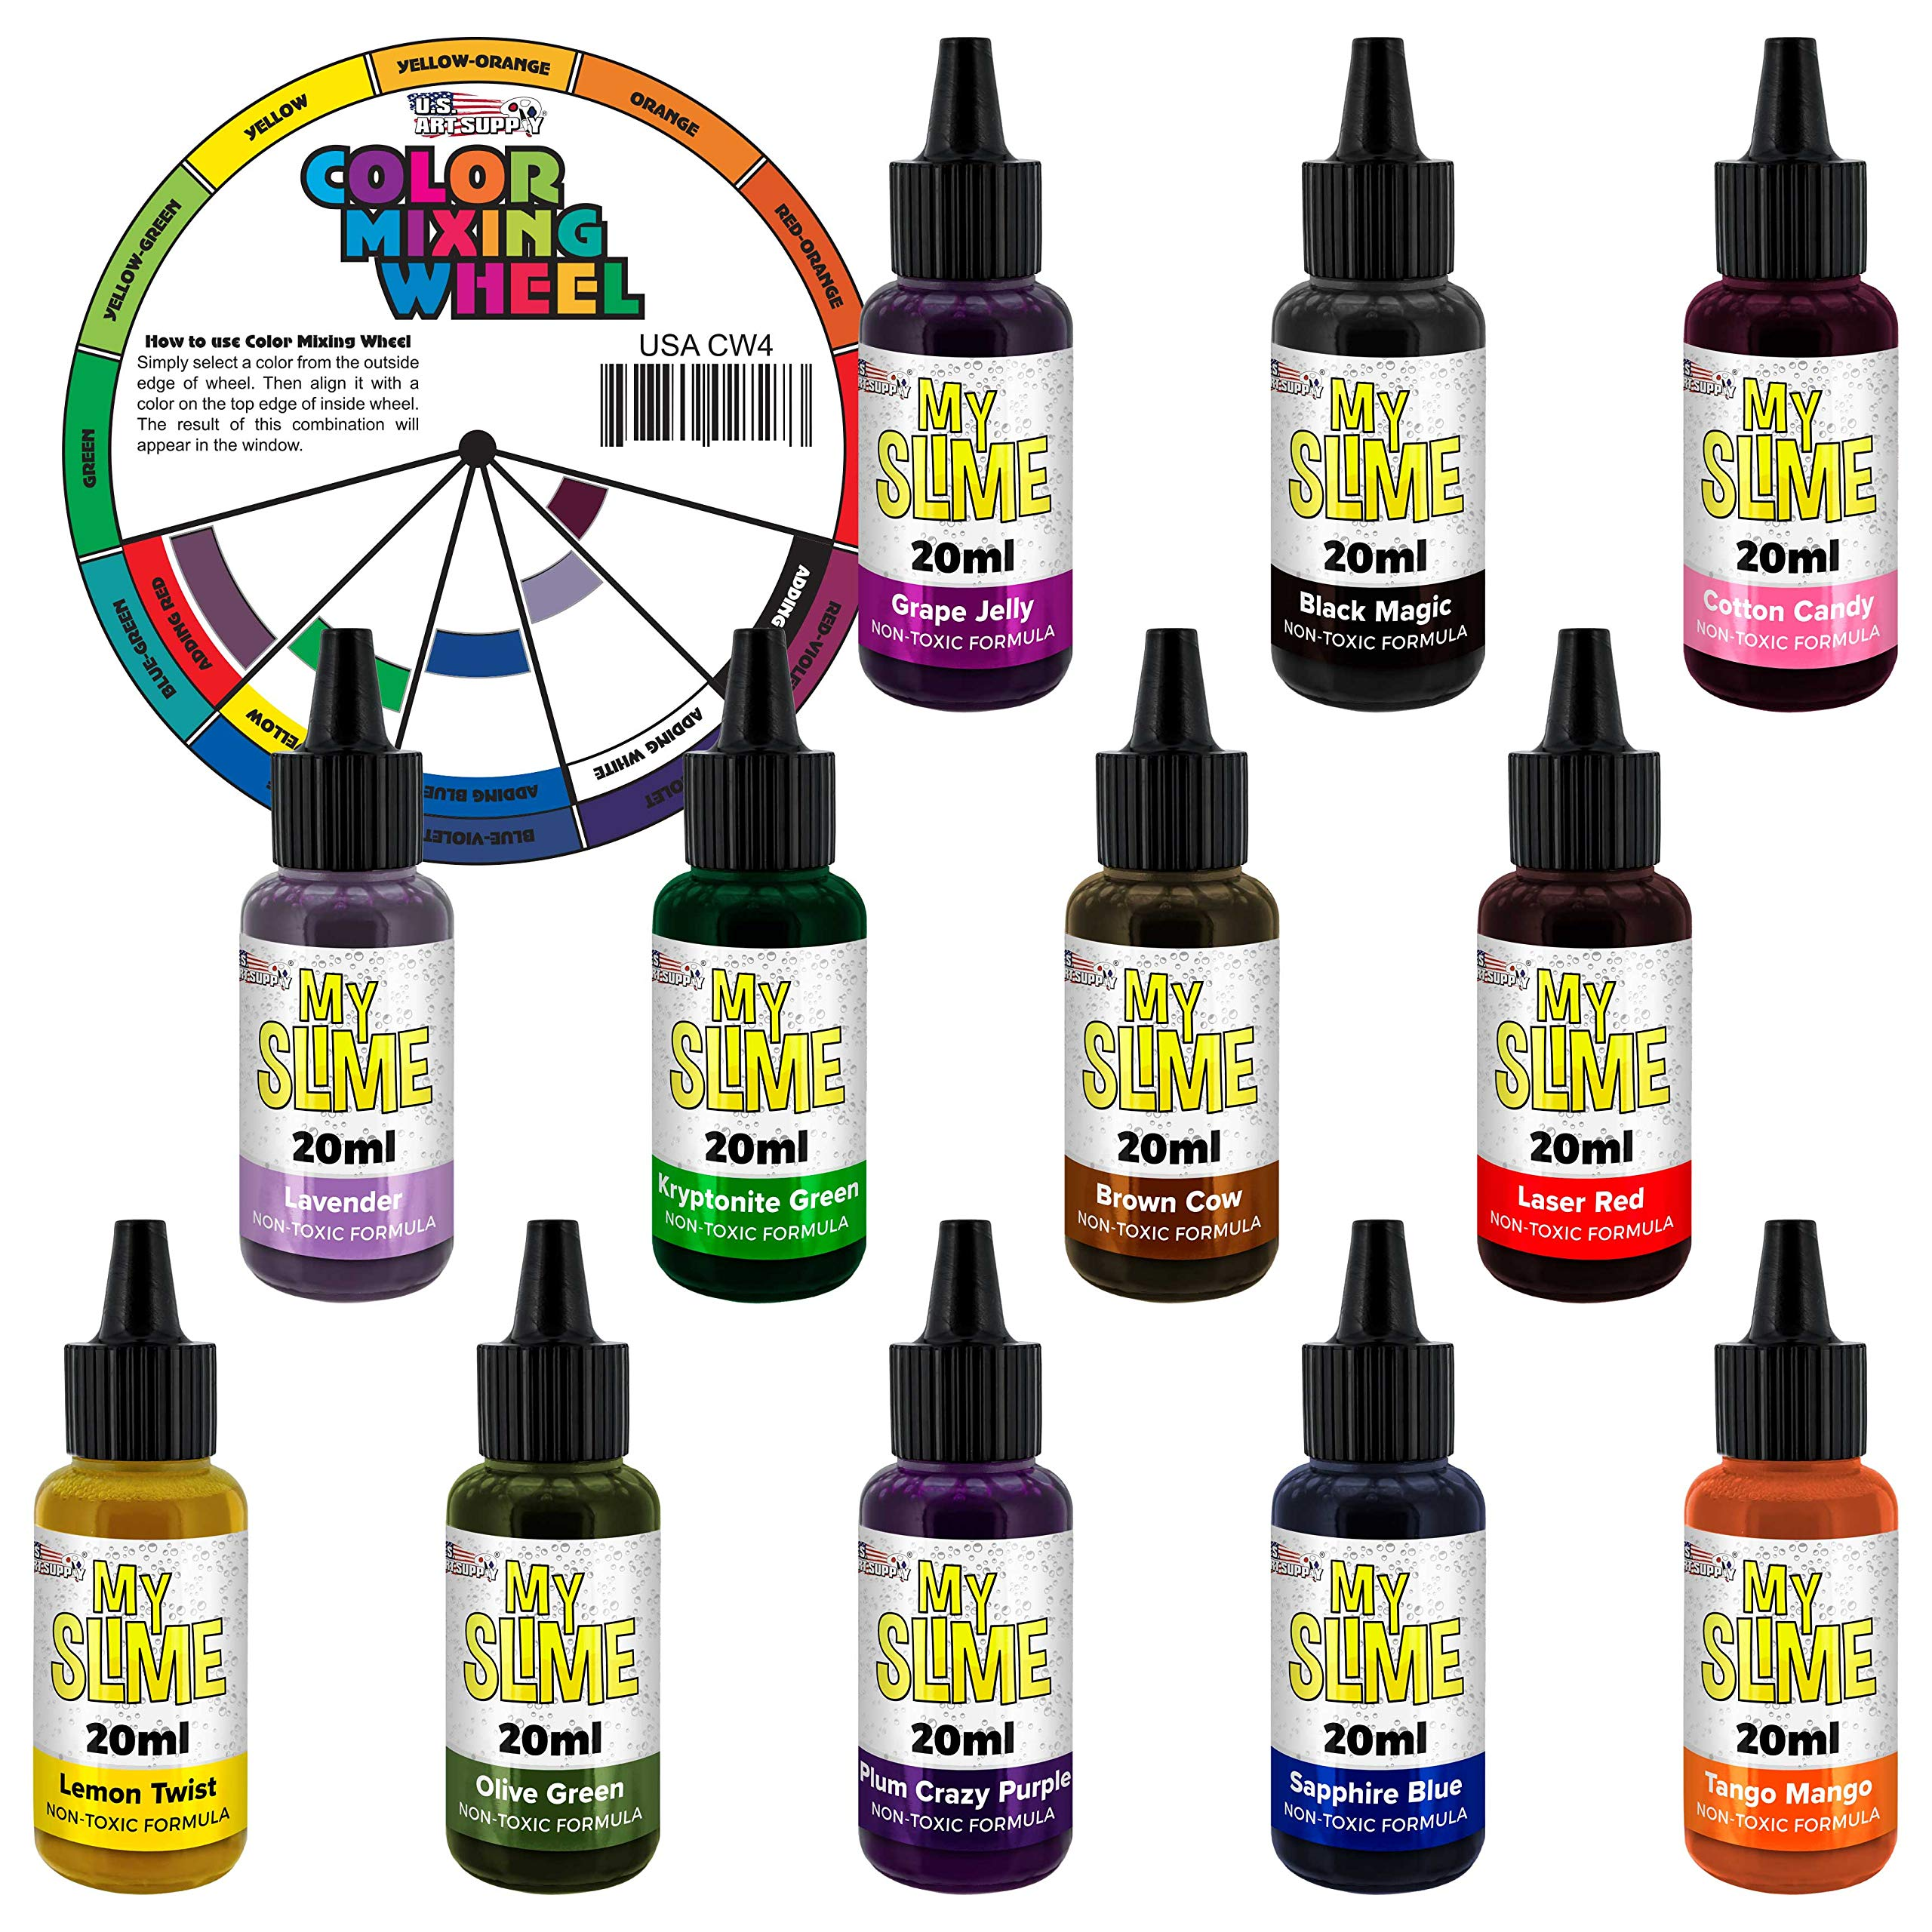 My Slime 12 Color Premium Slime Coloring Set, Large 20 ml Bottles - Non-Toxic Dyes, Works in White & Clear Slime Making Glues, Soaps - Color Mixing Wheel - Red, Tango Mango, Lemon Twist, Cotton Candy